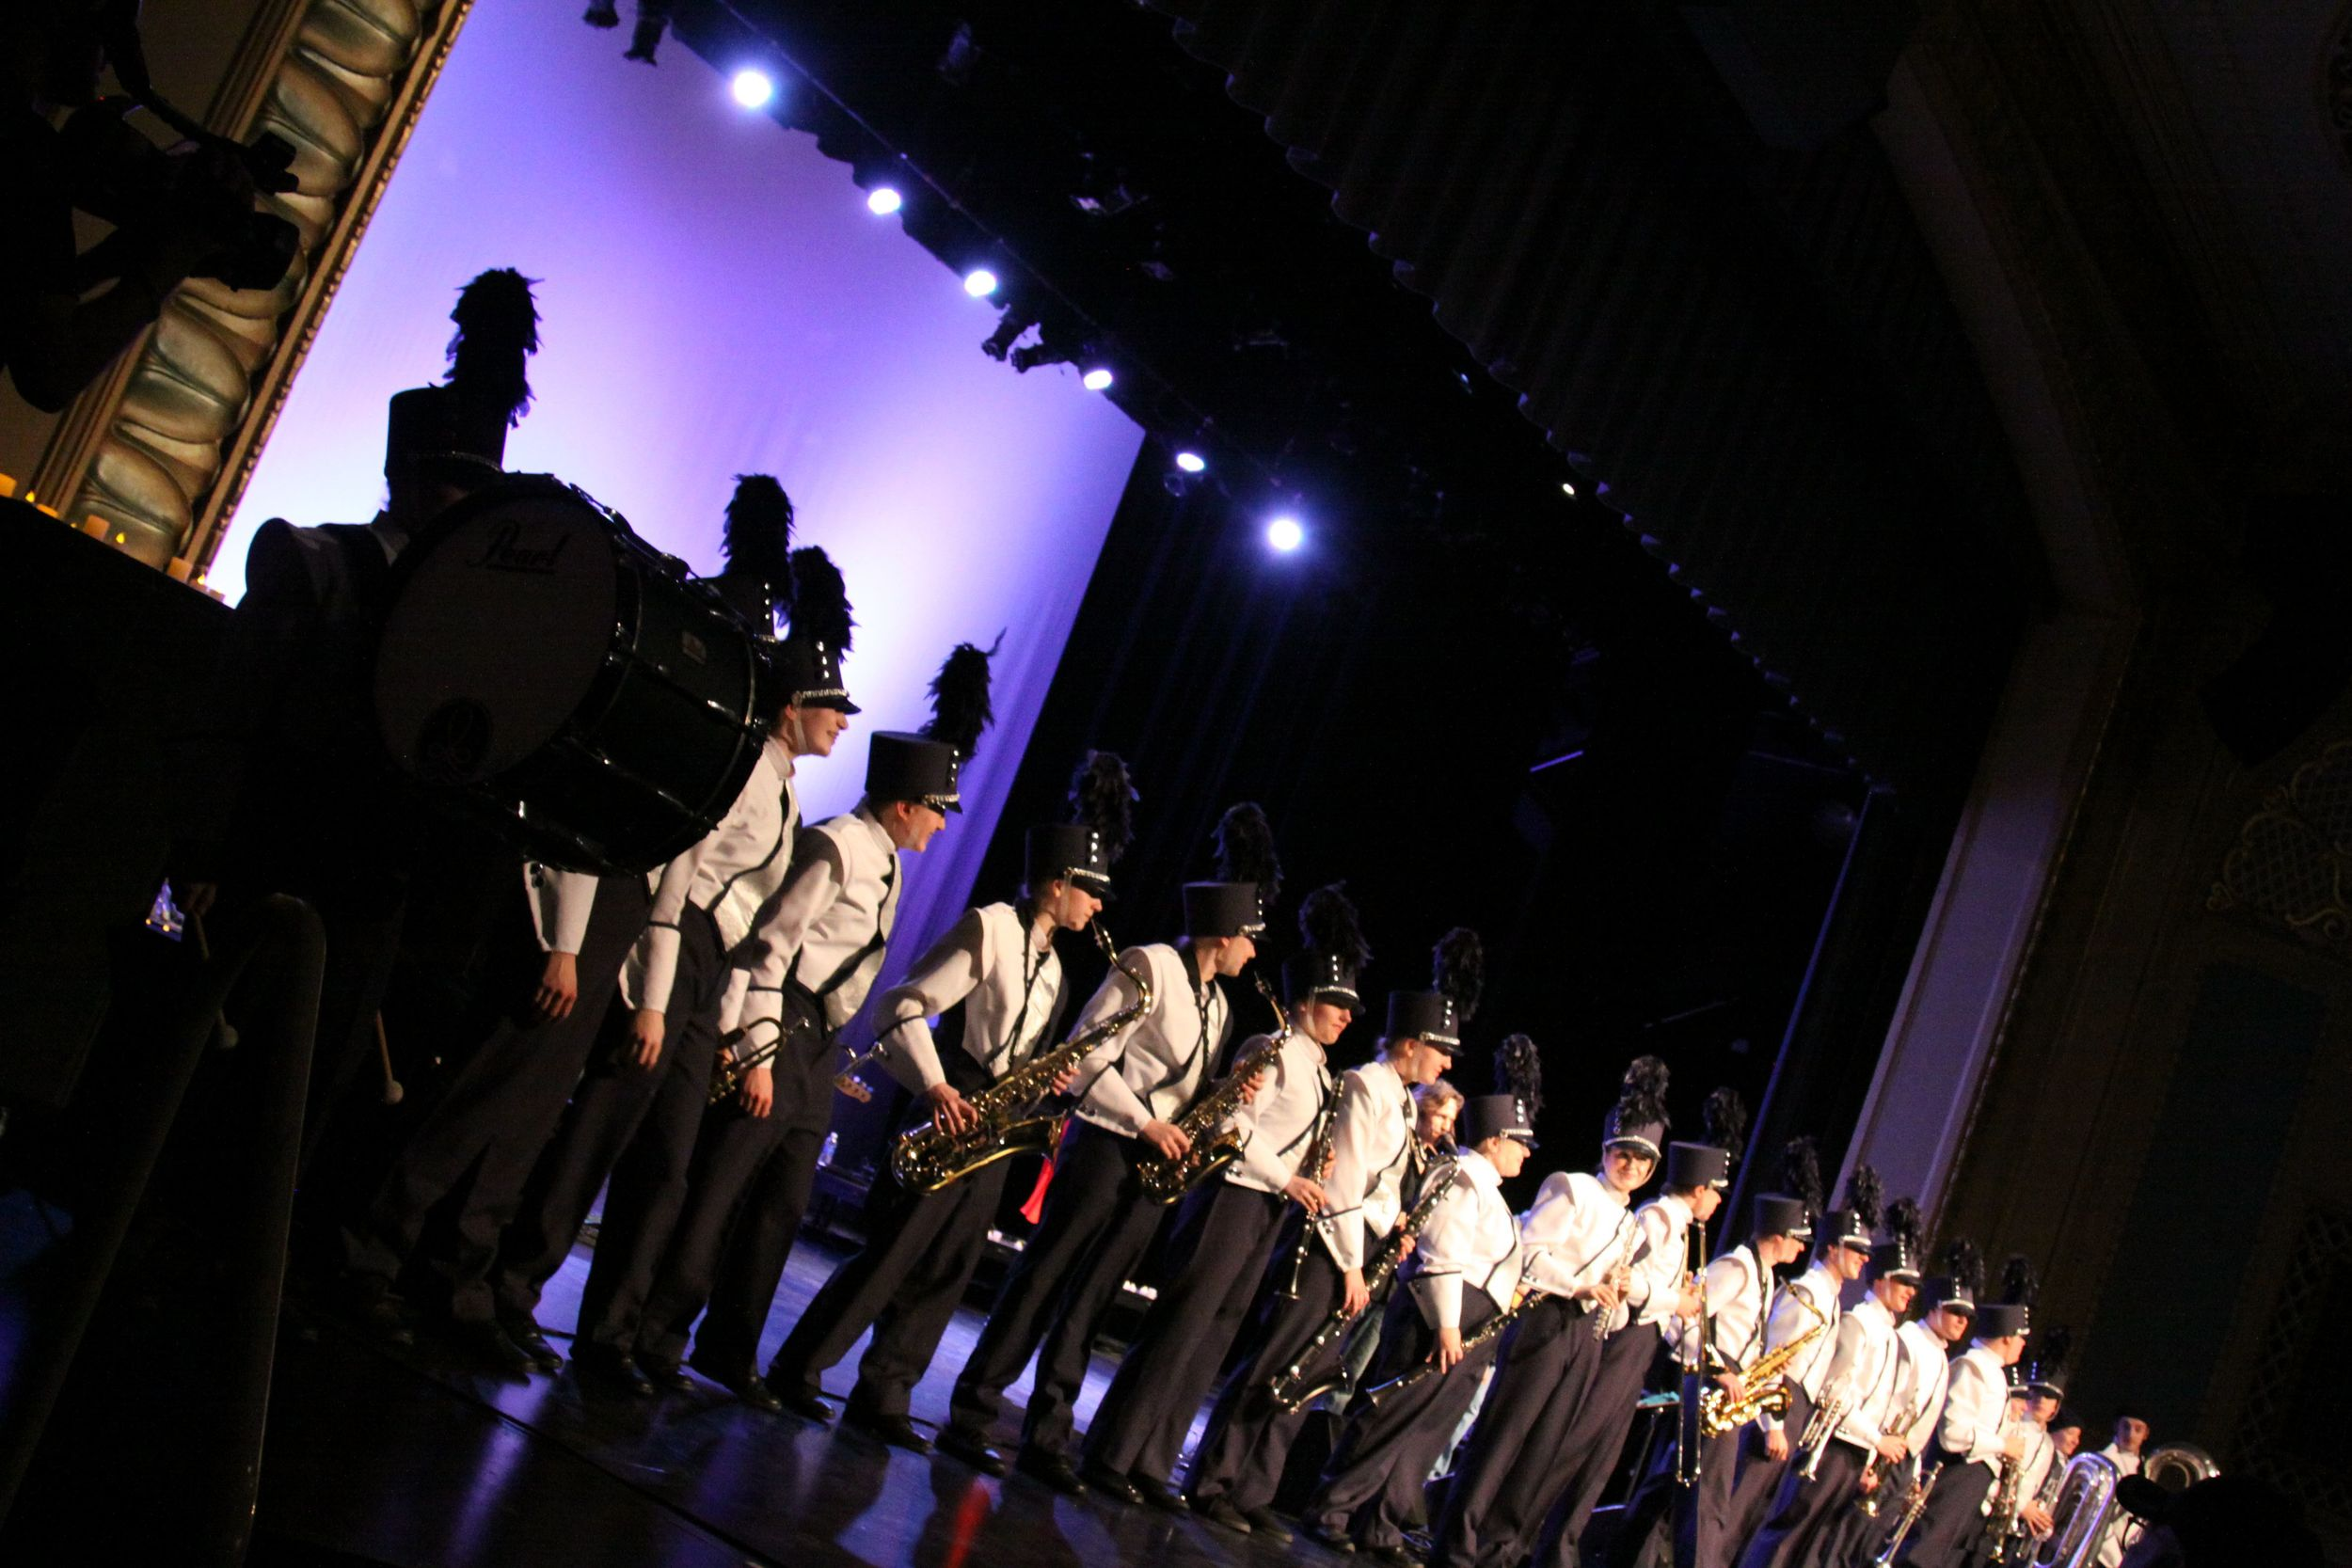 """The St. Cloud All-City Marching Band joined """"Rumours and Dreams"""" for """"TUSK"""" at """"Gold Dust Gala"""" event at The Paramount Theater in St. Cloud, MN. October 2013."""